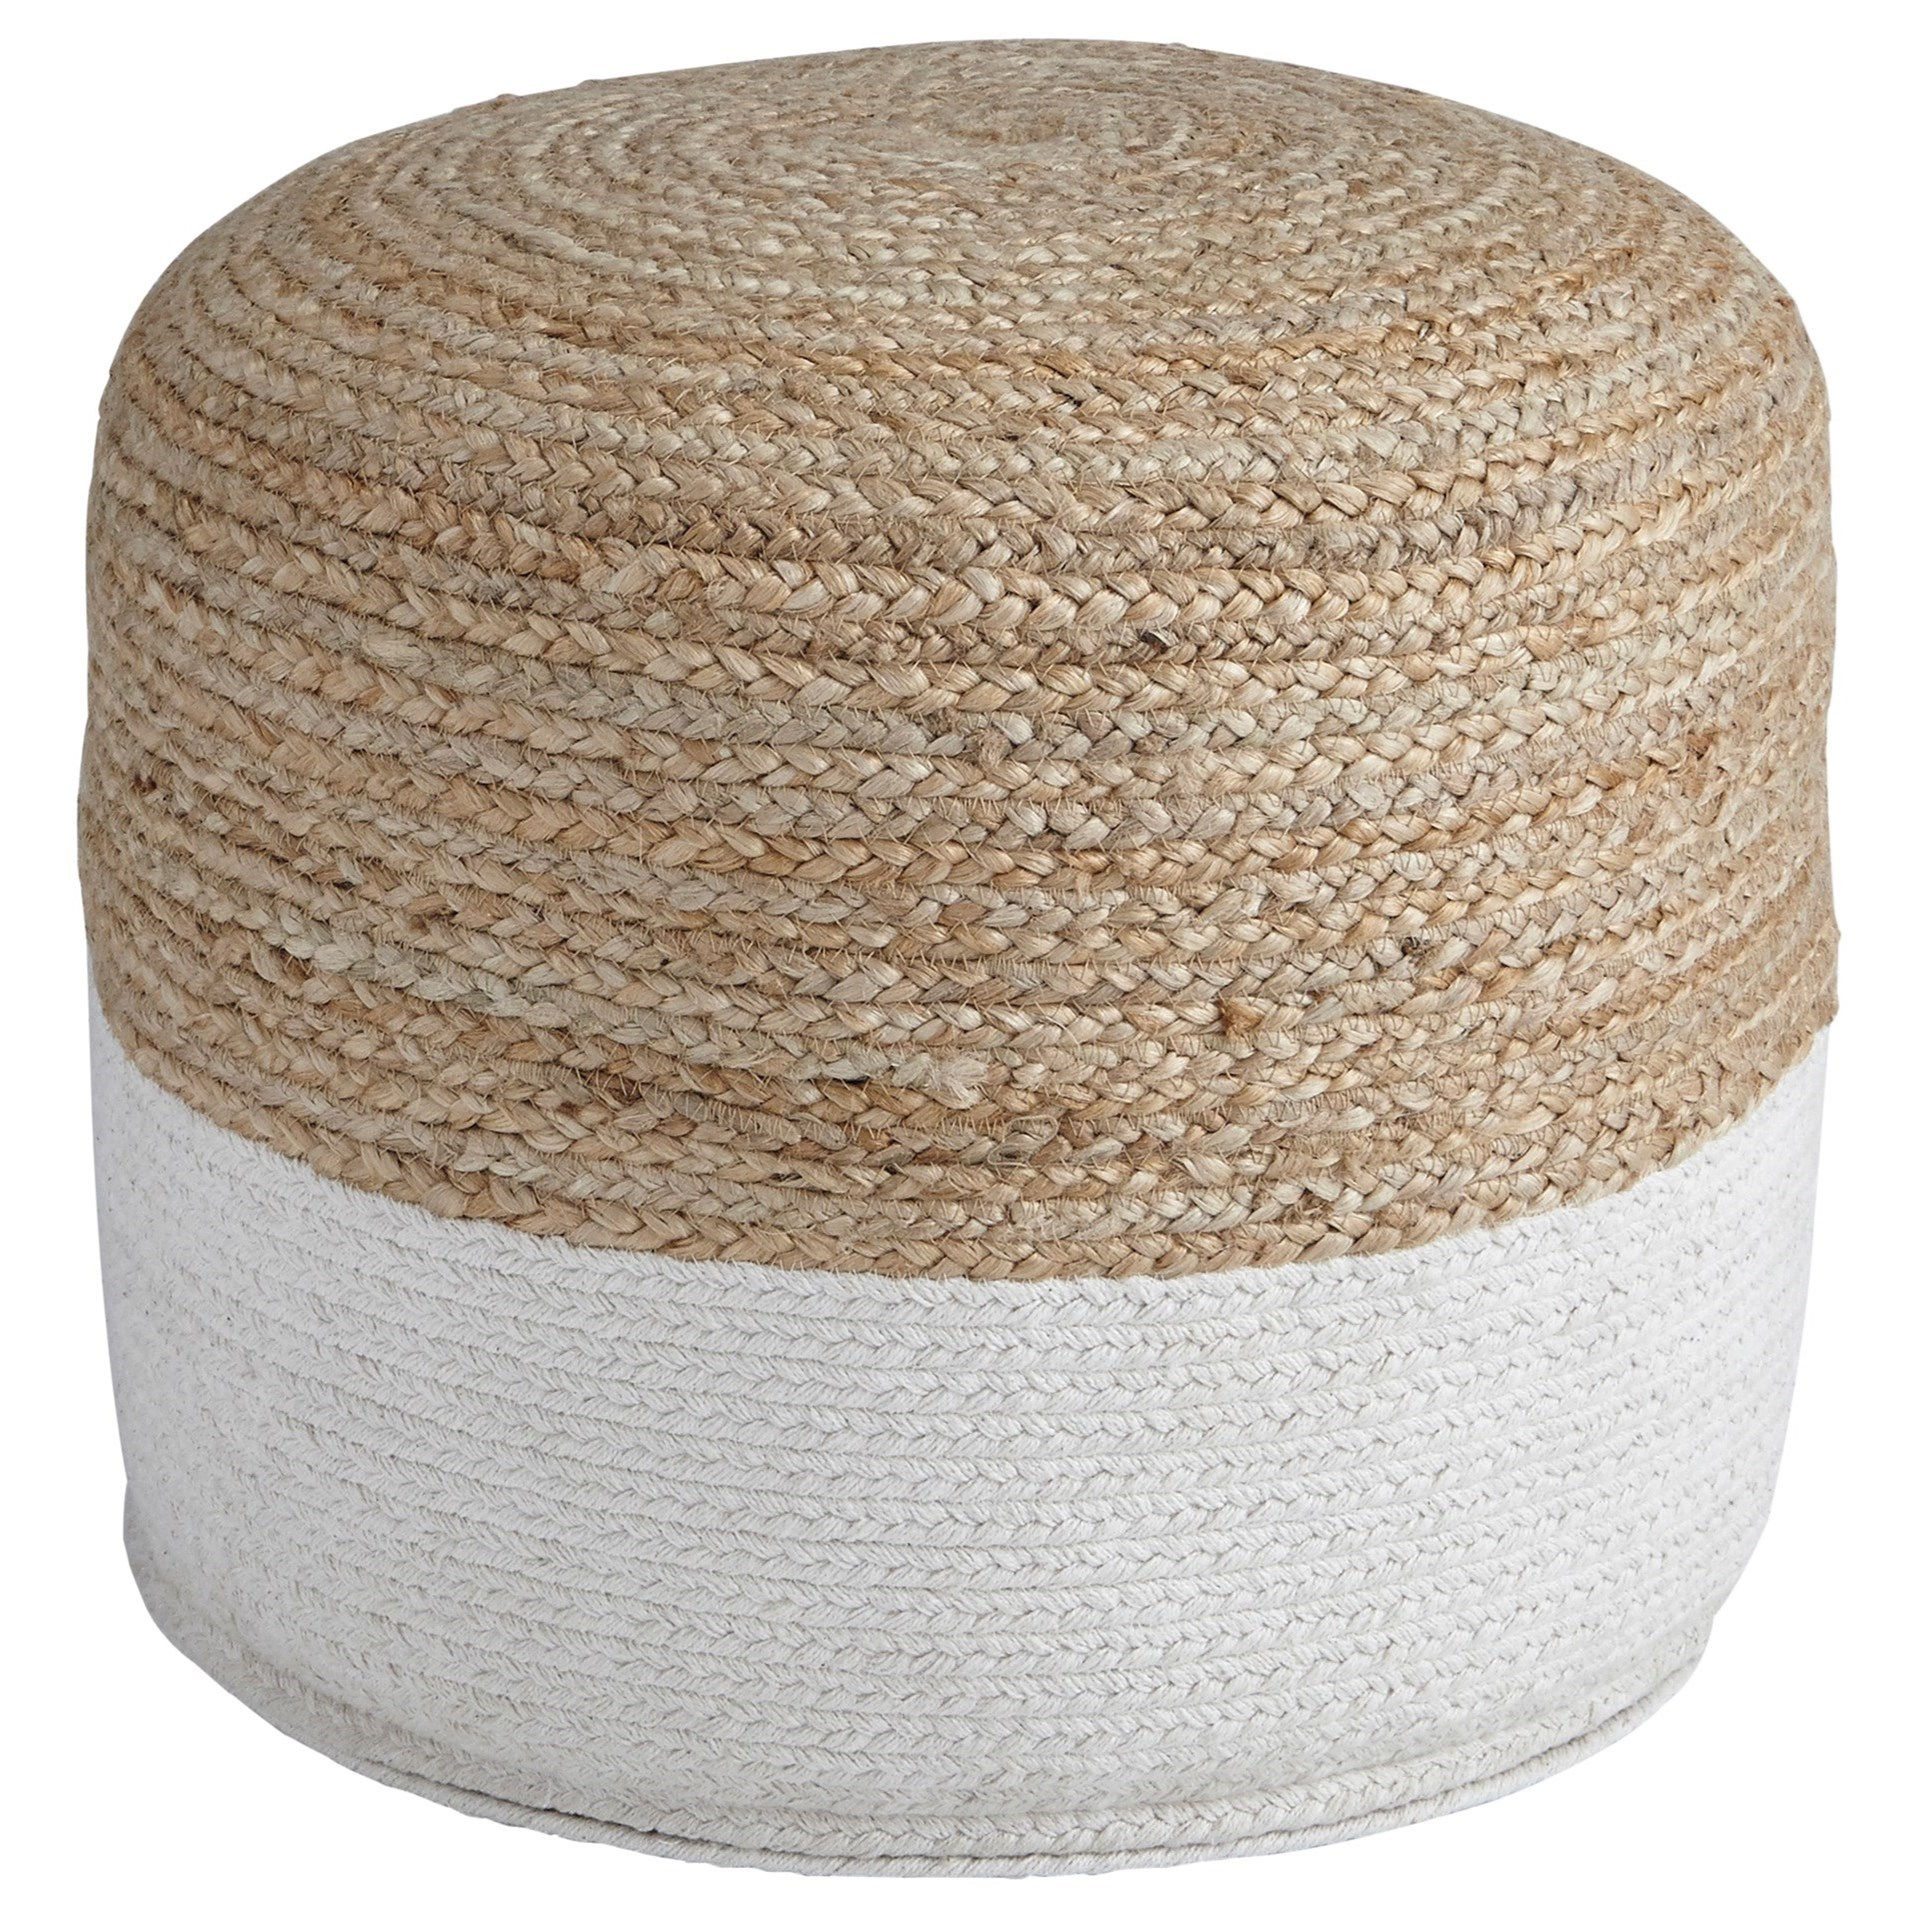 Poufs Sweed Valley - Natural/White Pouf by Signature Design by Ashley at Catalog Outlet